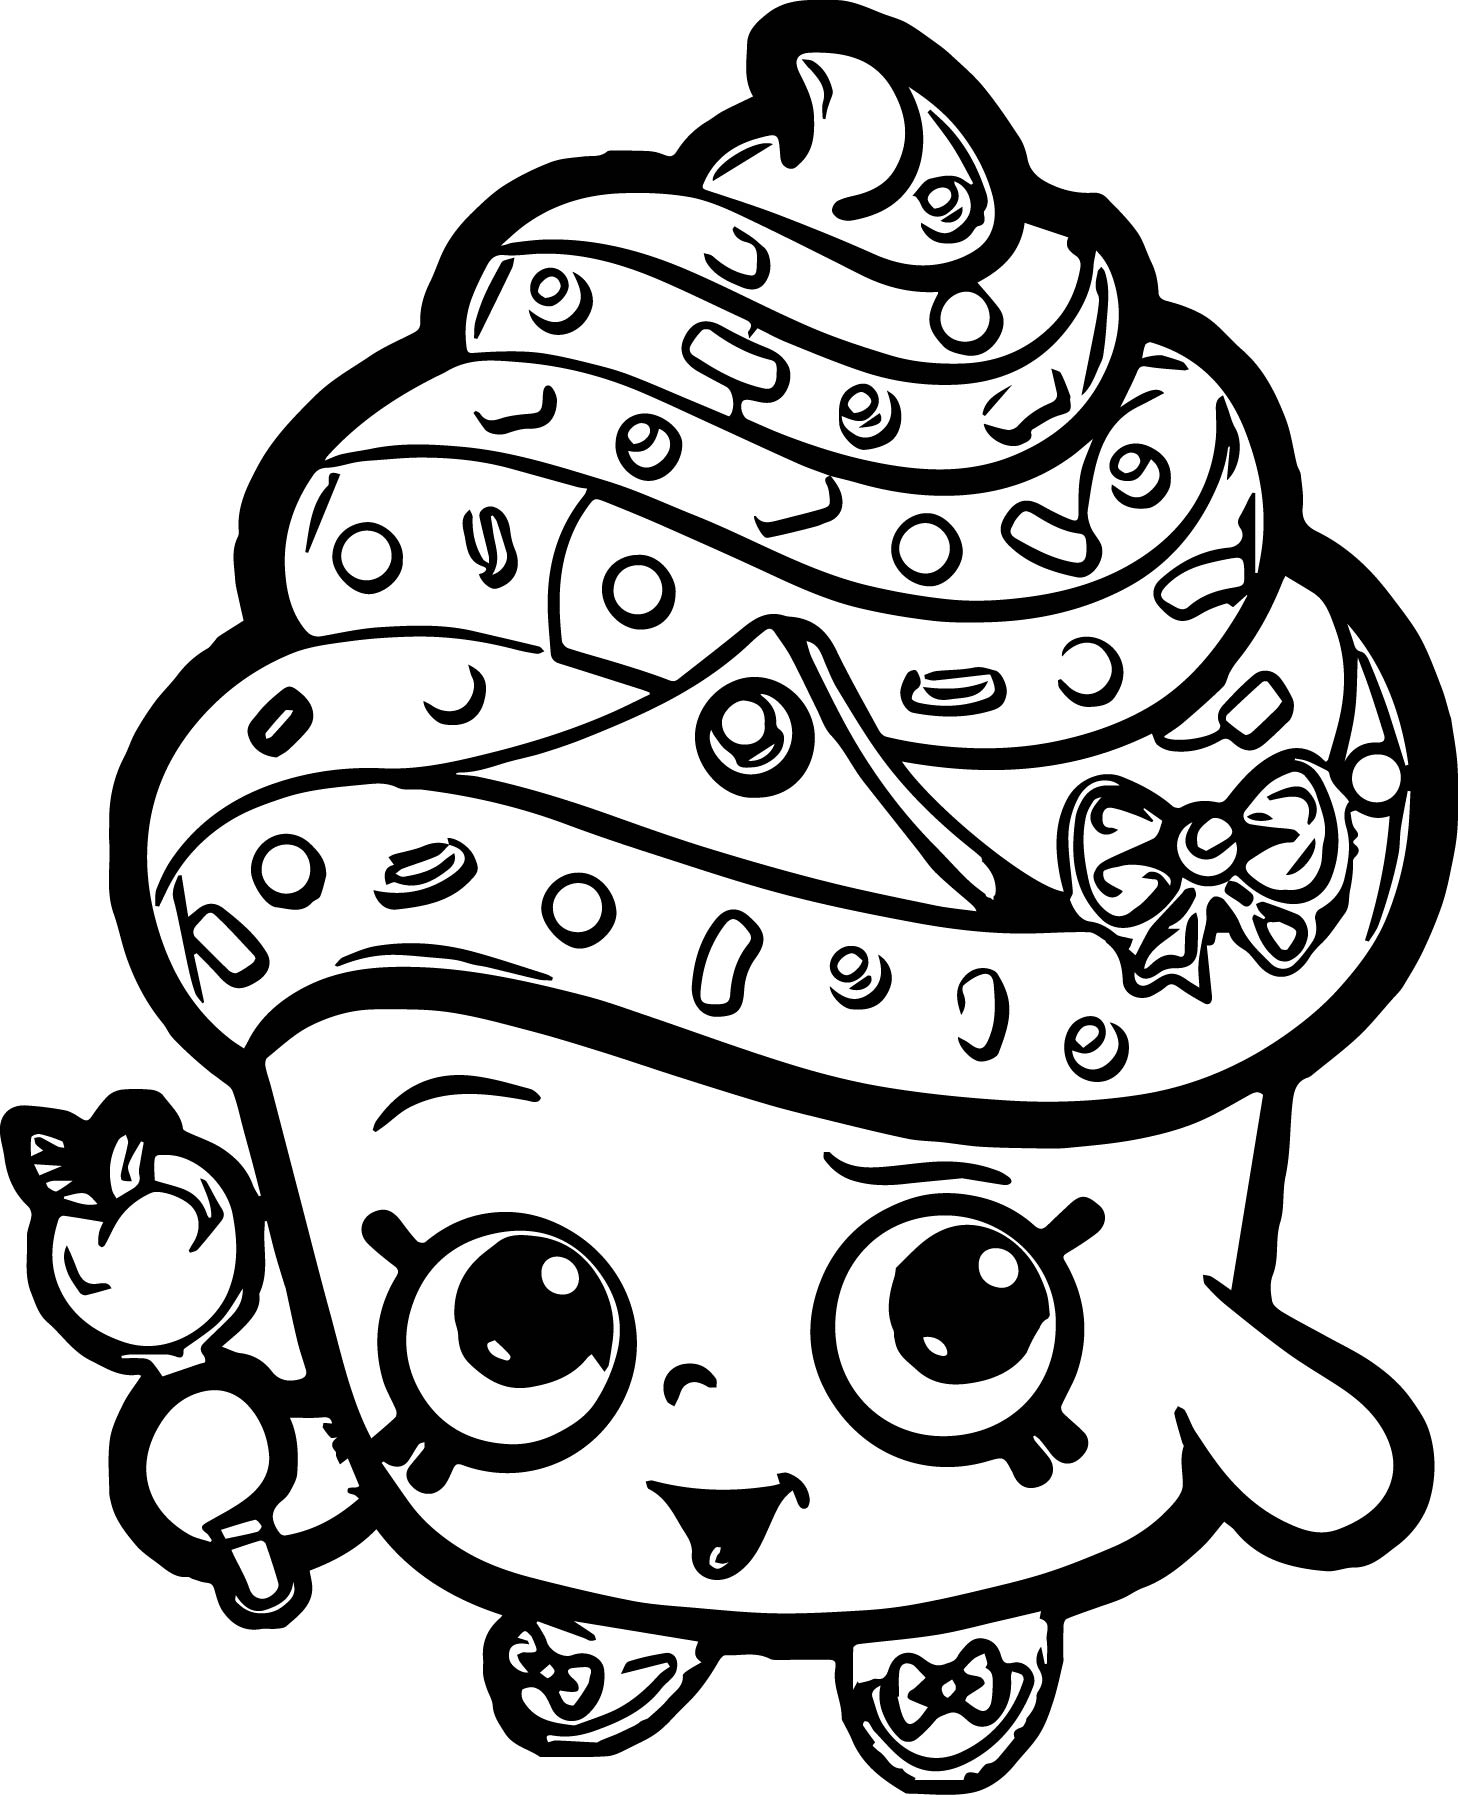 Shopkins Coloring Pages Cupcake Queen Colouring To Cure Gallery Of Limited Edition